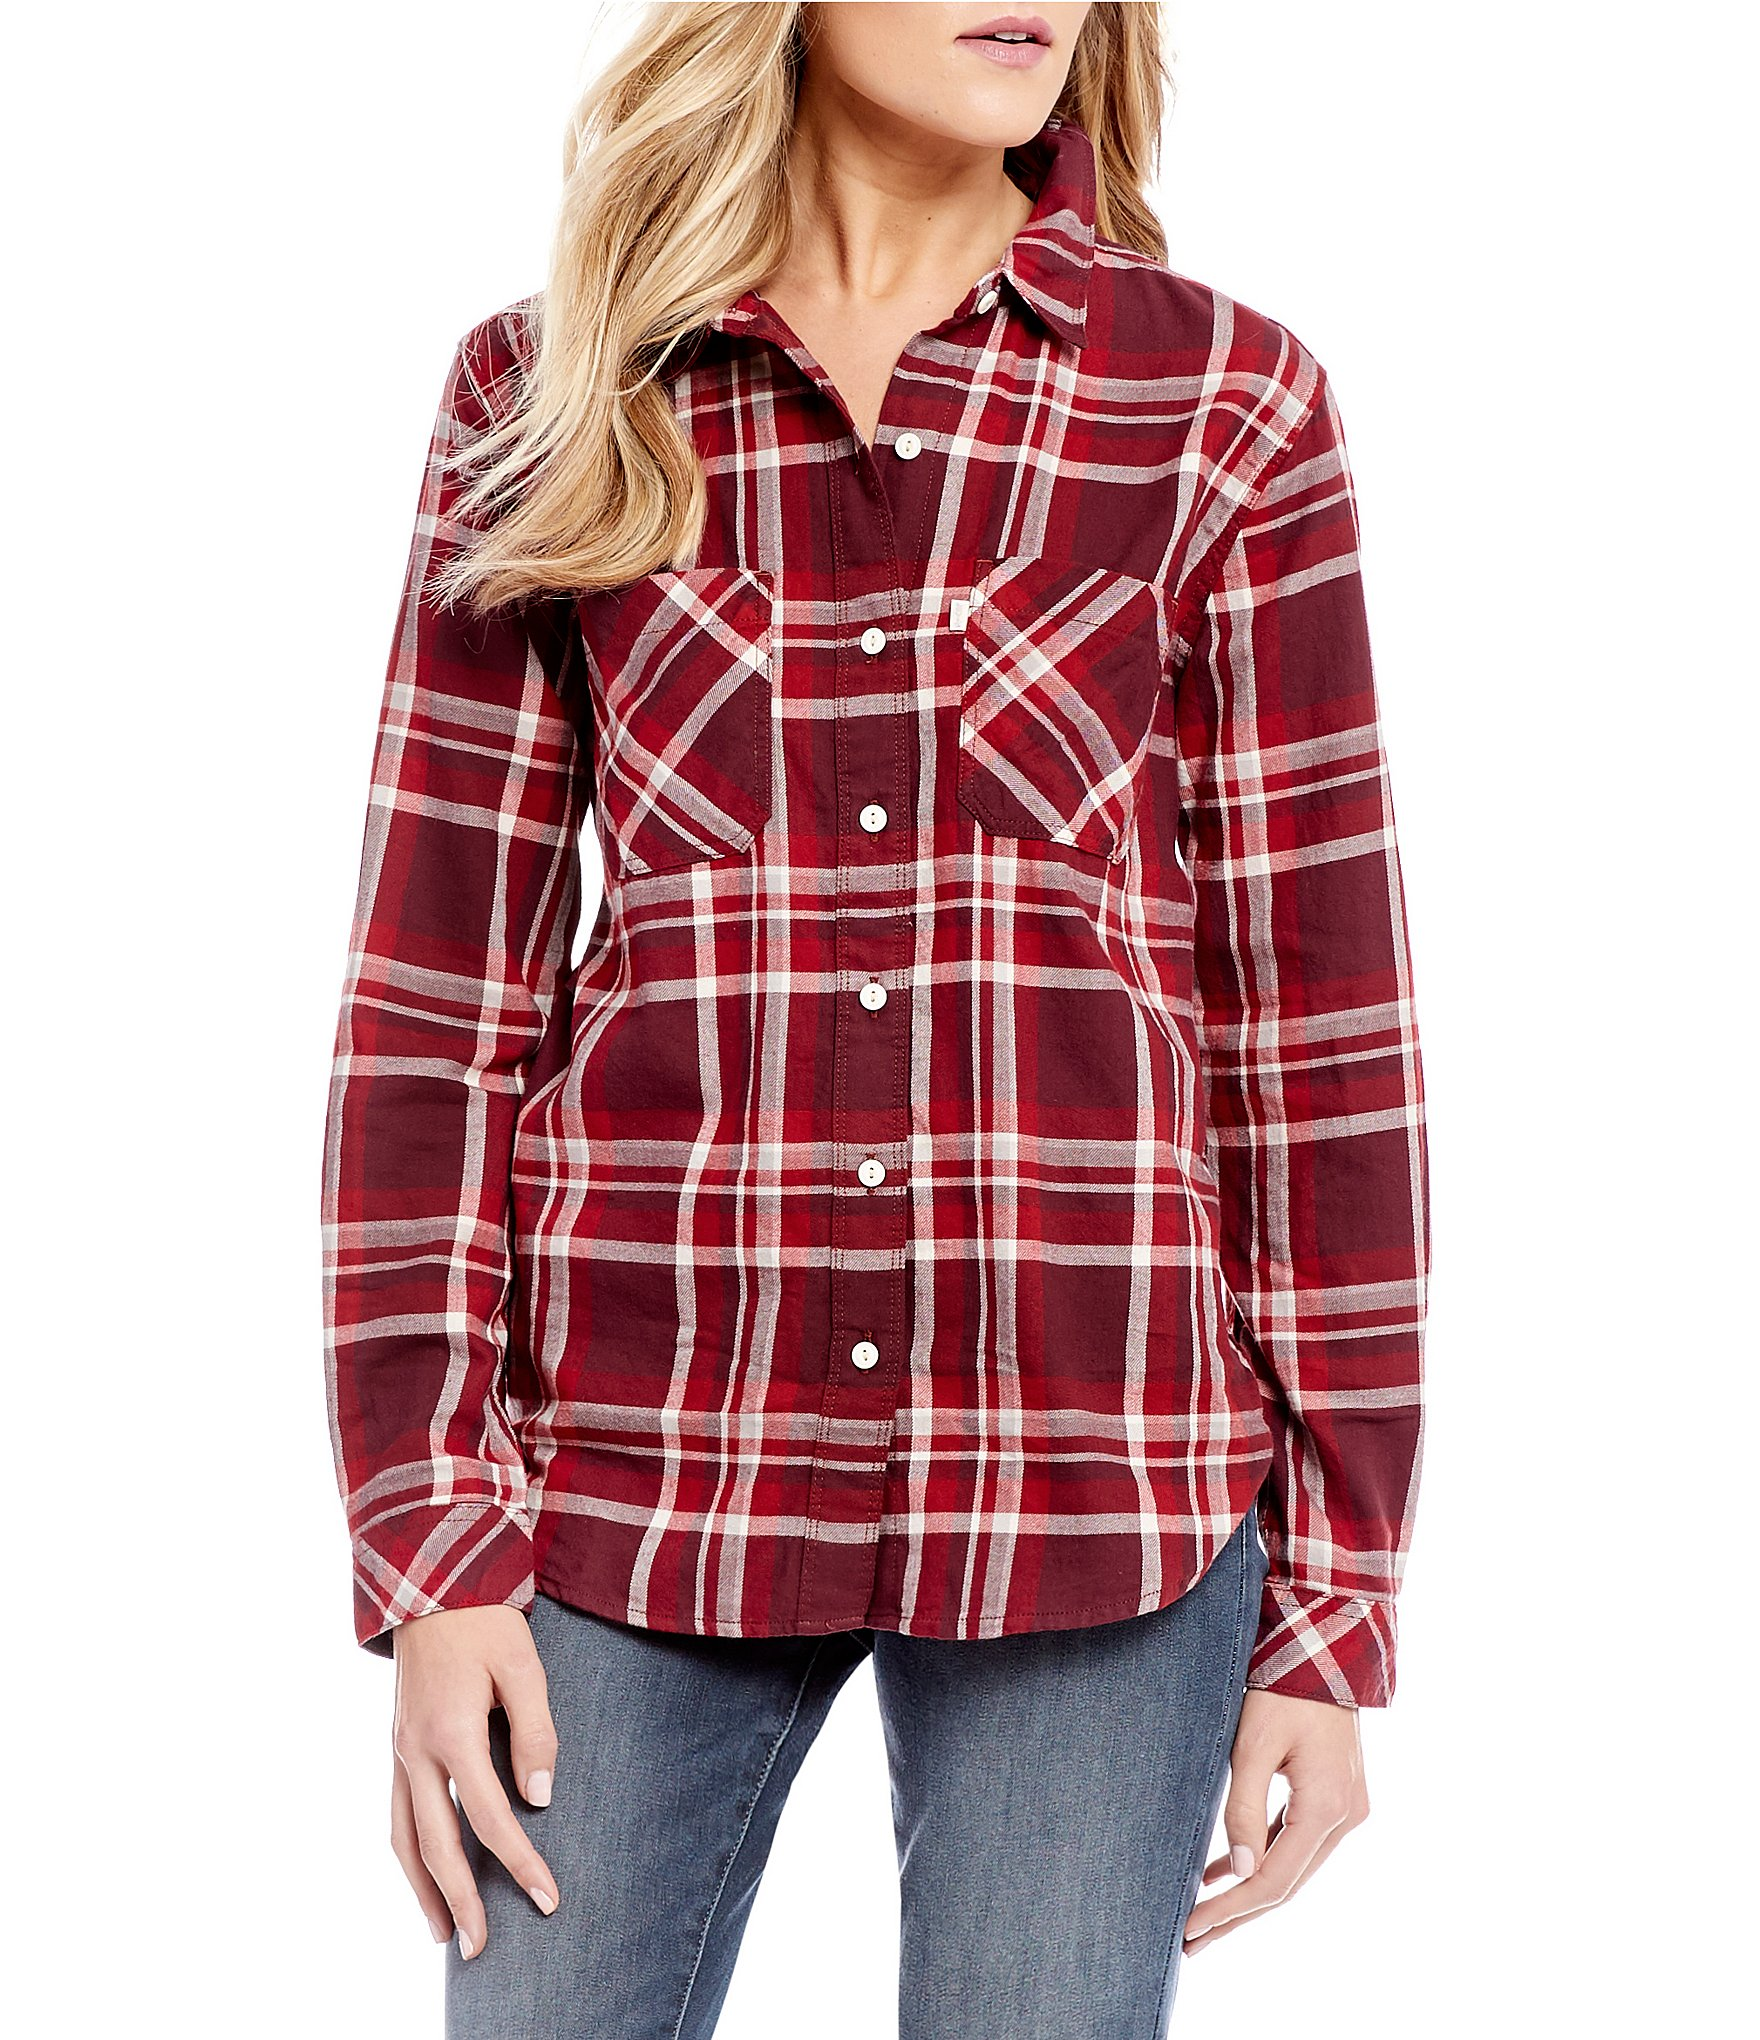 levis plaid workwear boyfriend shirt dillards